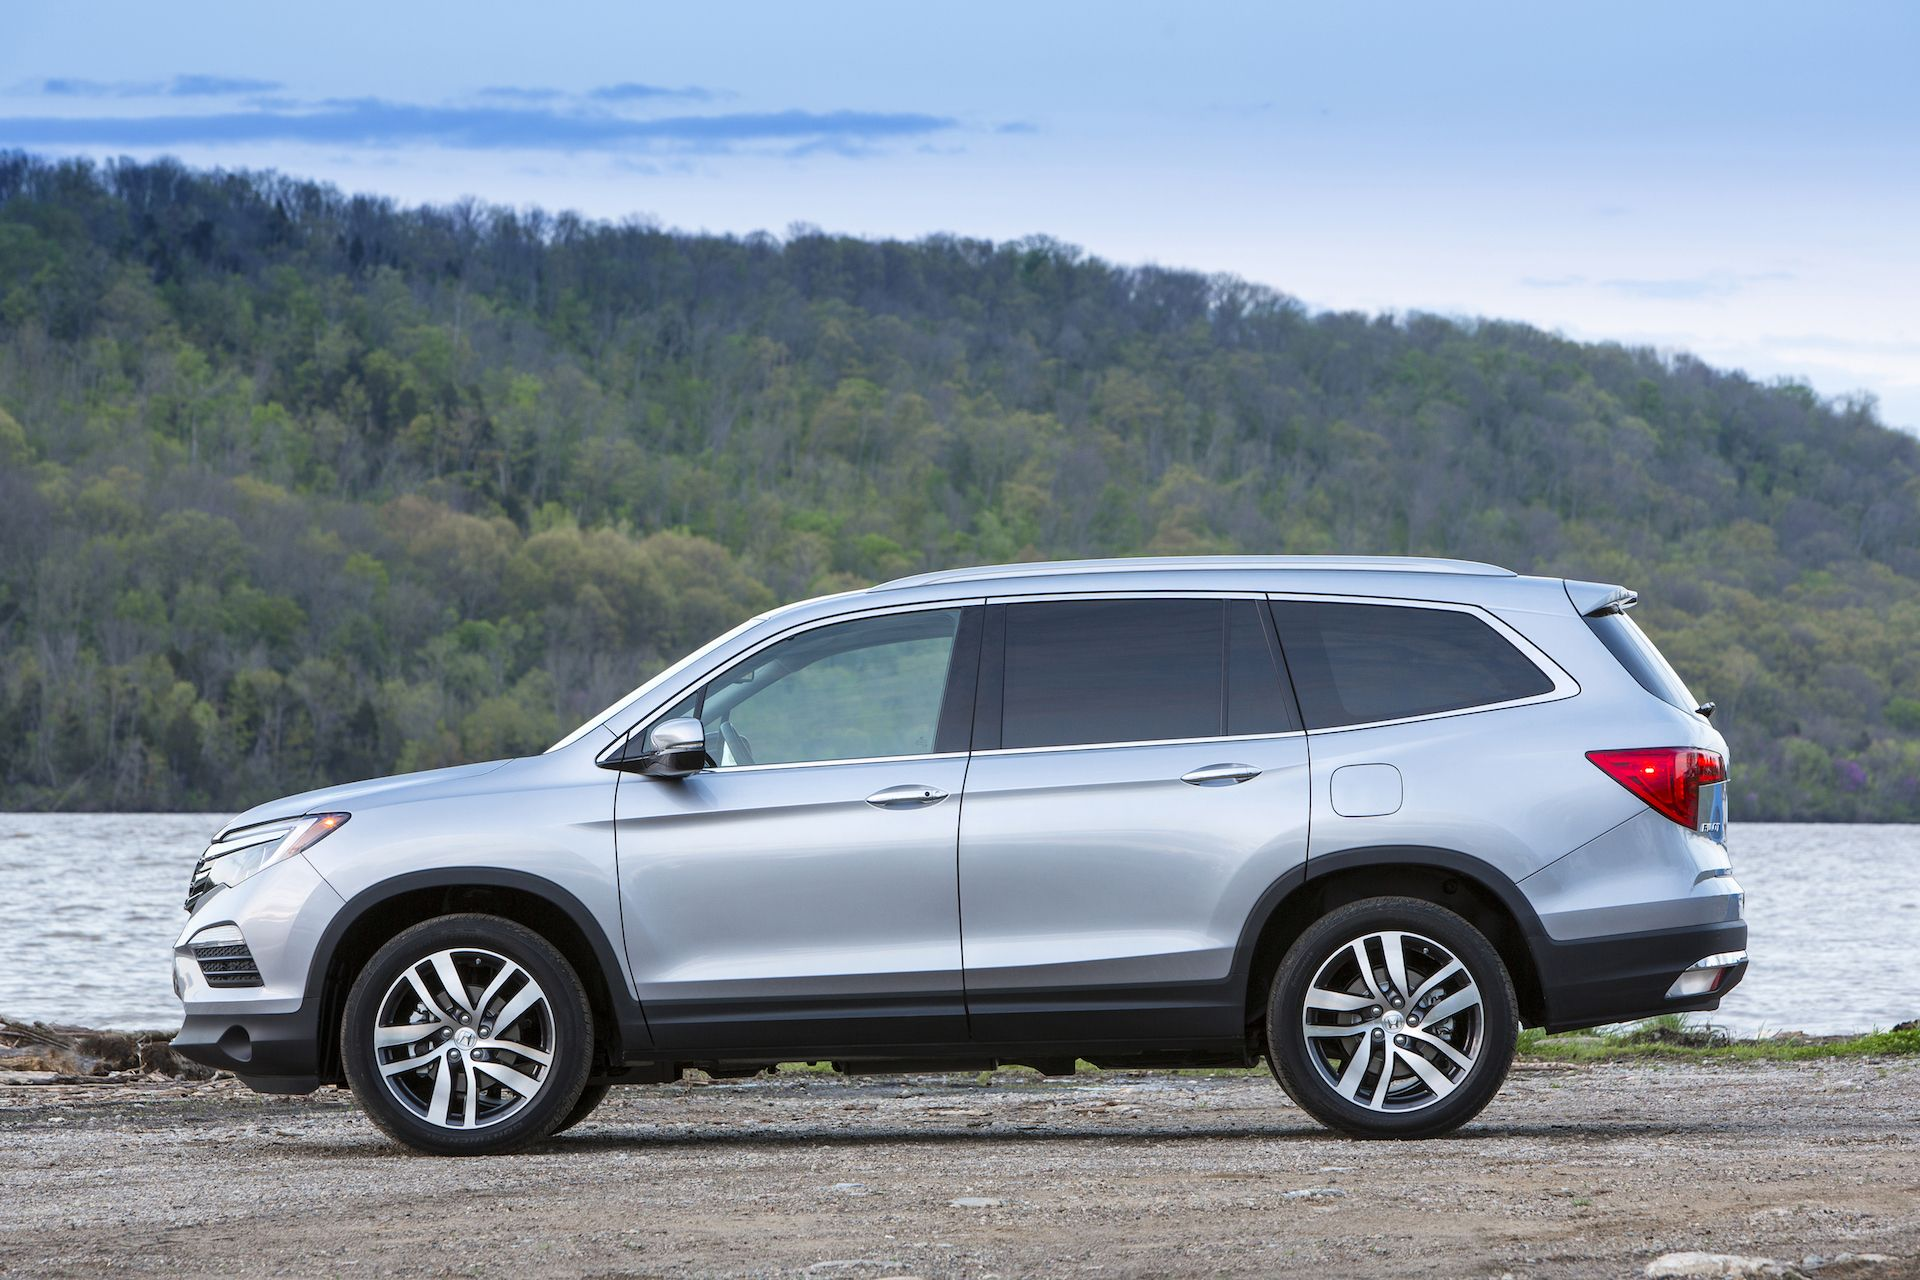 Get the latest reviews of the 2017 Honda Pilot. Find